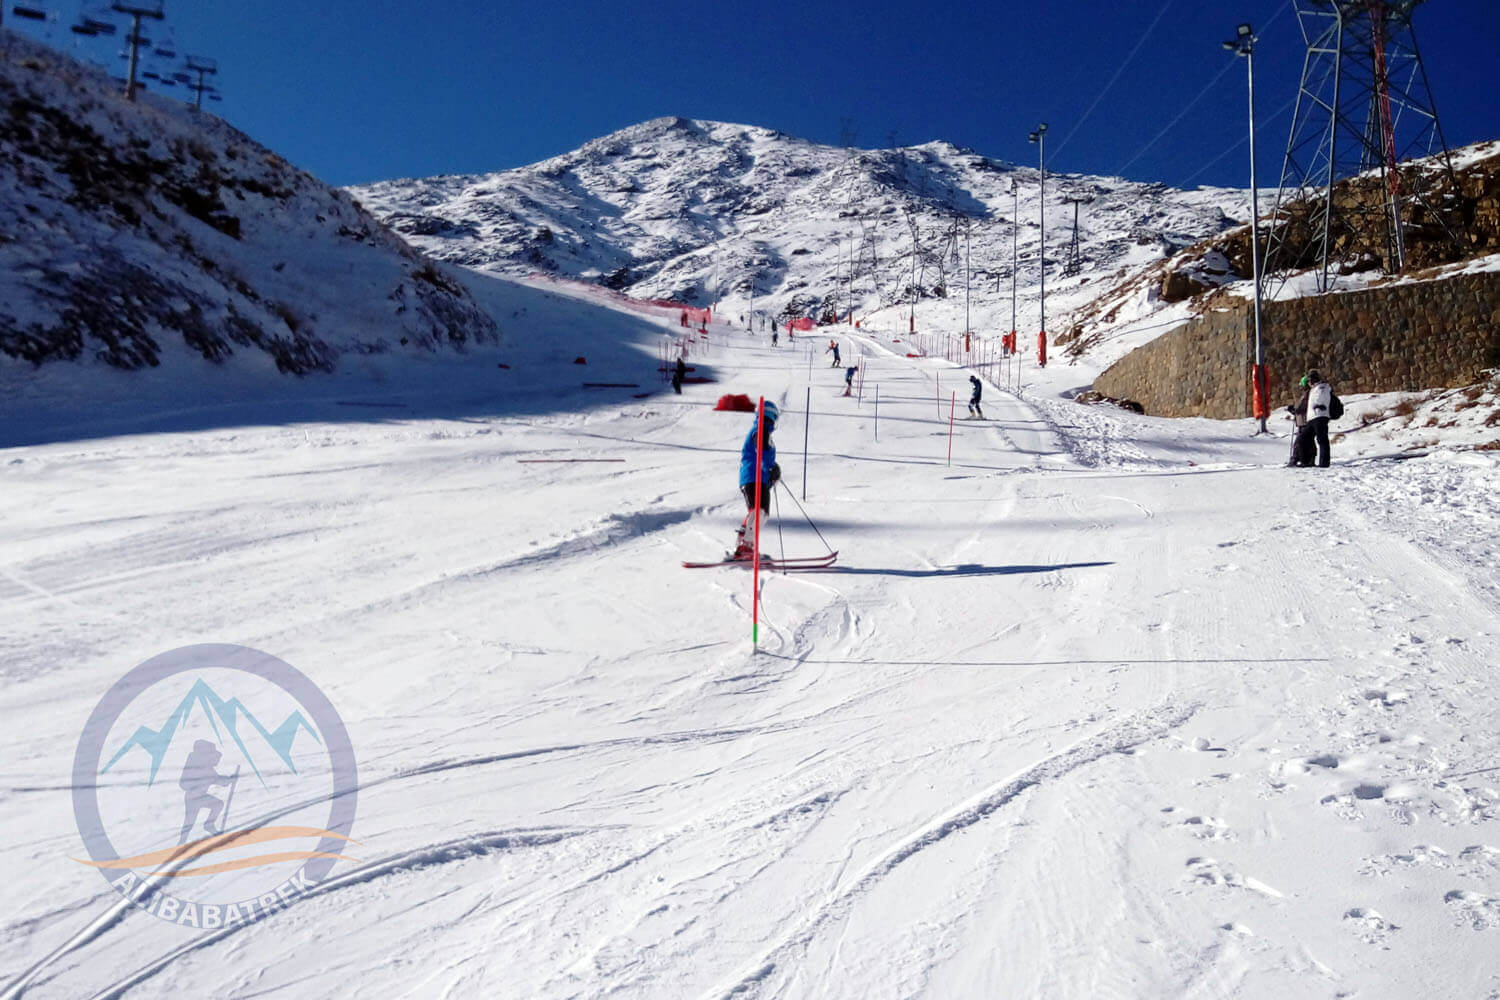 Alibabatrek Iran tours Iran tour packages Skiing in iran ski resort Iran Cultural tour Darbandsar Ski Resort2